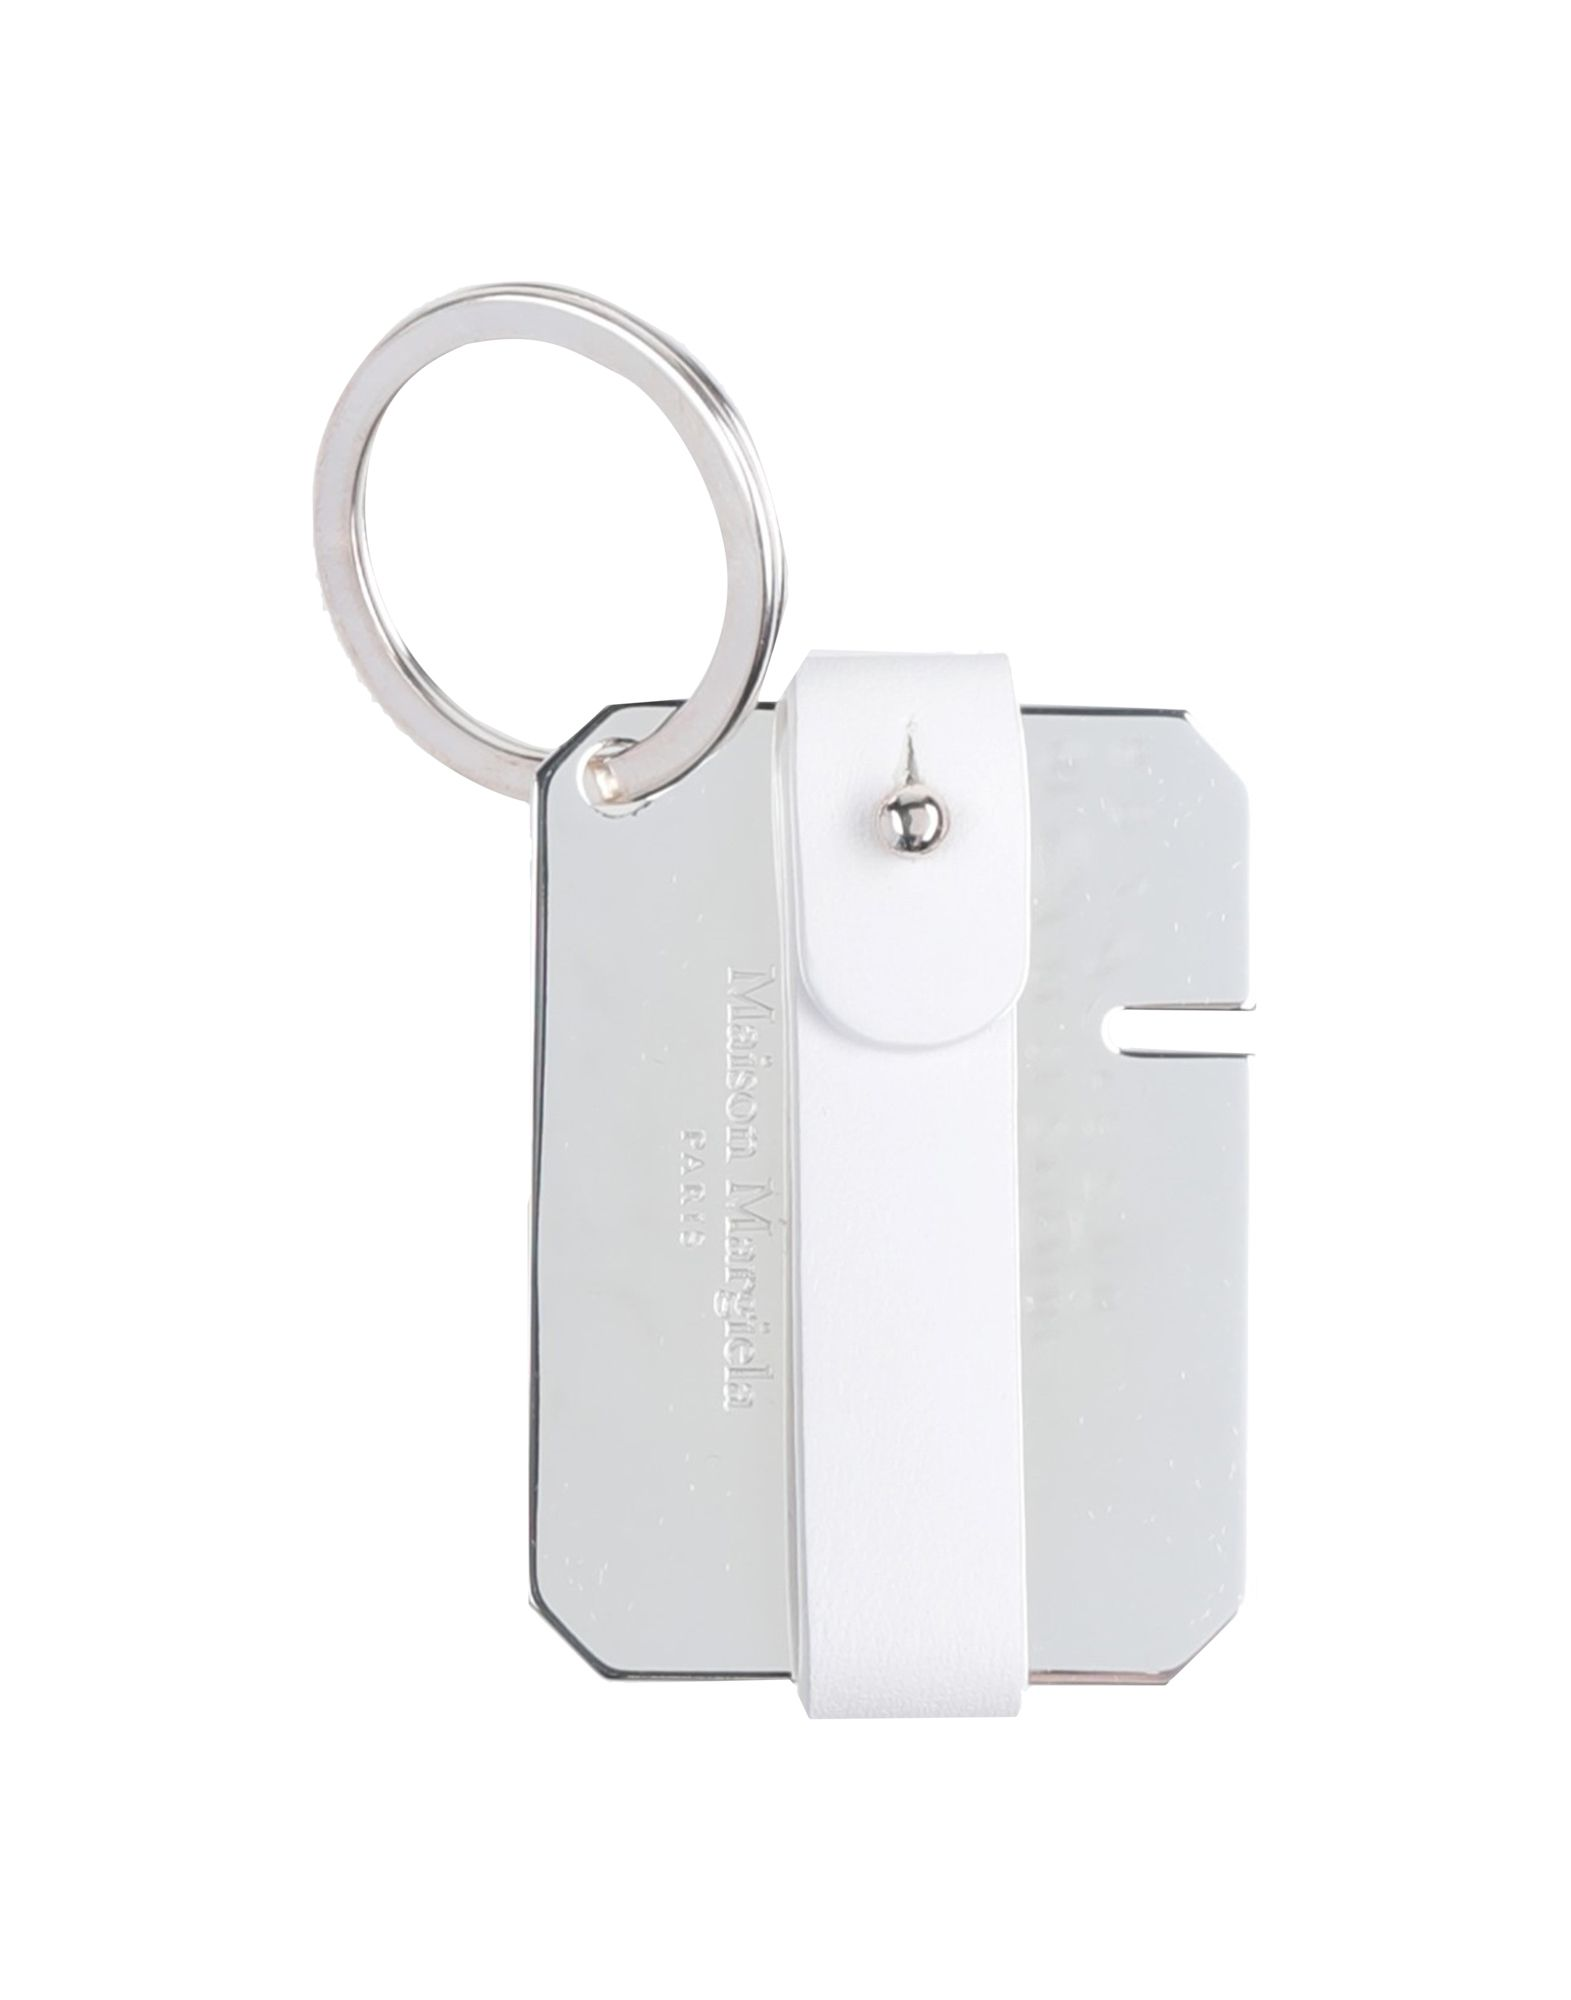 344ff0111f29 Maison Margiela Key Ring - Men Maison Margiela Key Rings online on YOOX  United Kingdom - 46608755RB